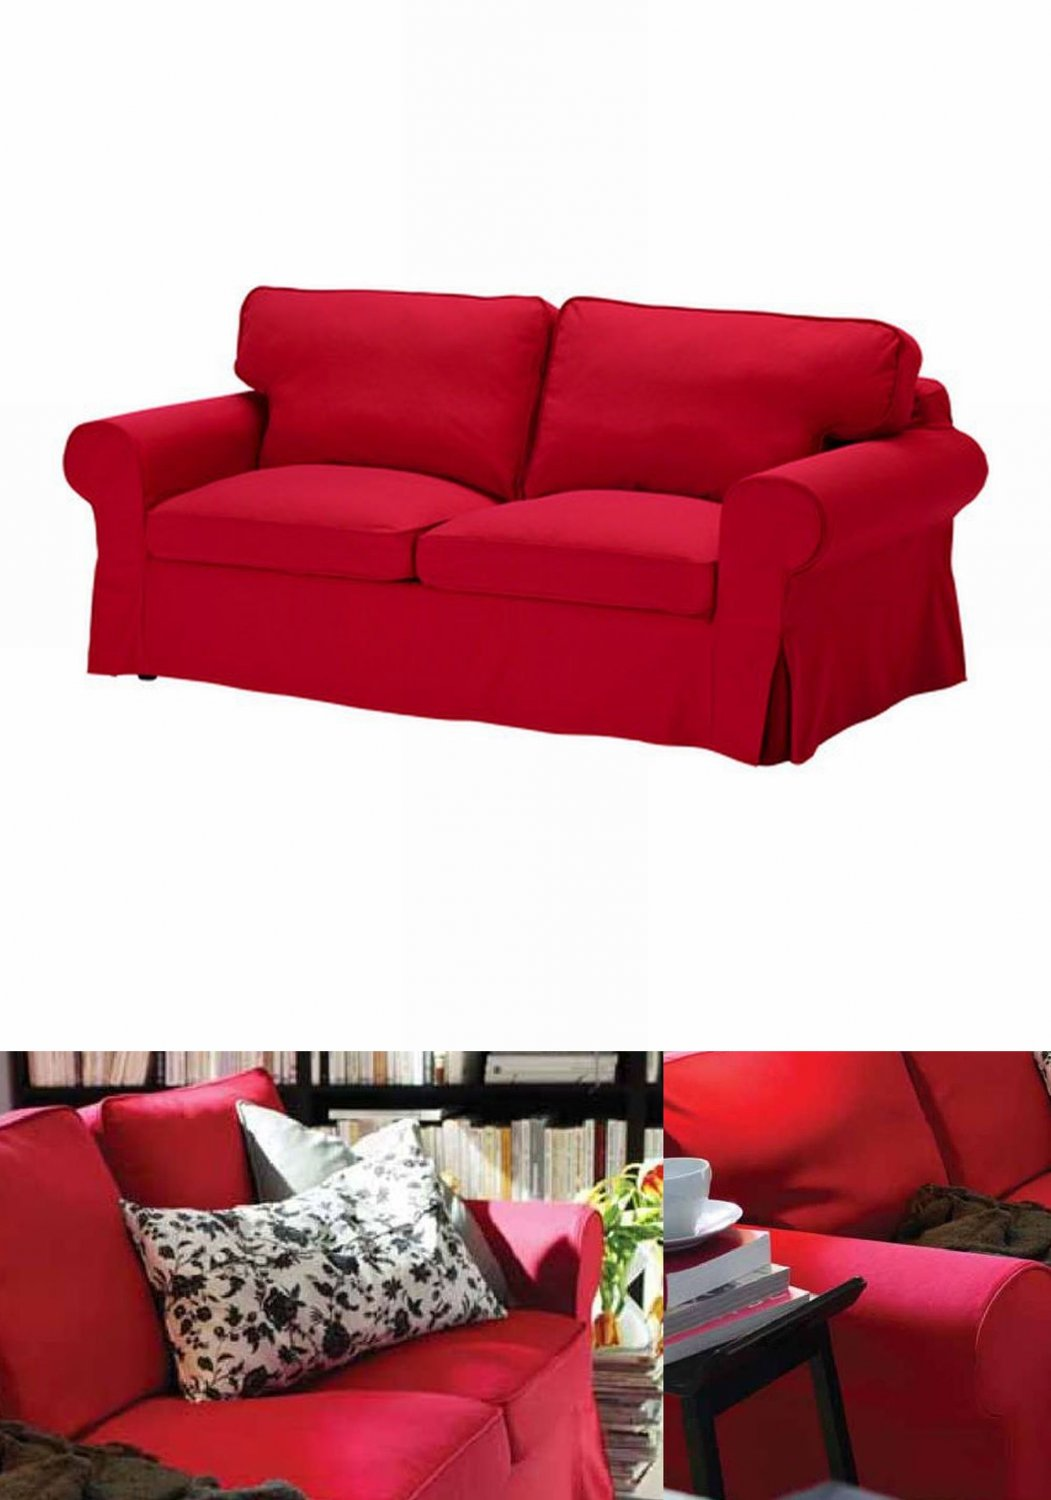 IKEA EKTORP 2 Seat Loveseat Sofa COVER Slipcover IDEMO RED